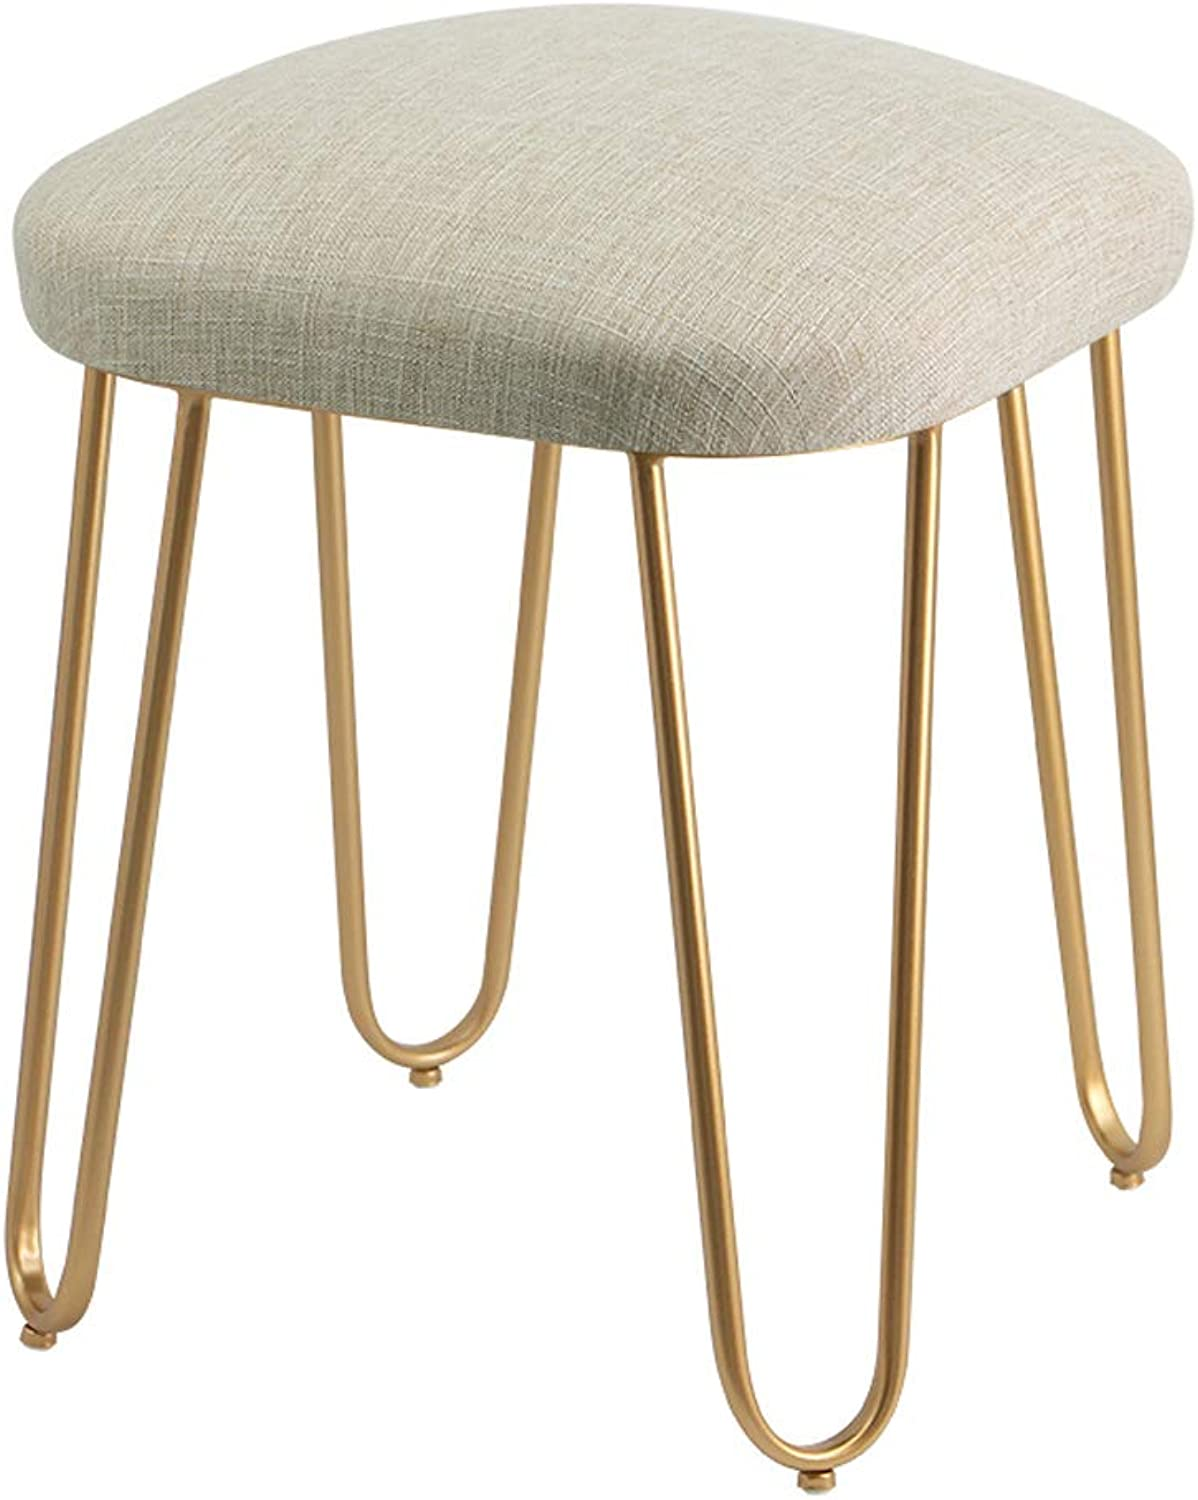 Makeup Stool Wrought Iron Footstool, Simple Dressing Stool, Home Fabric, shoes Bench, Suitable for Living Room, Bedroom, Entrance (Khaki)